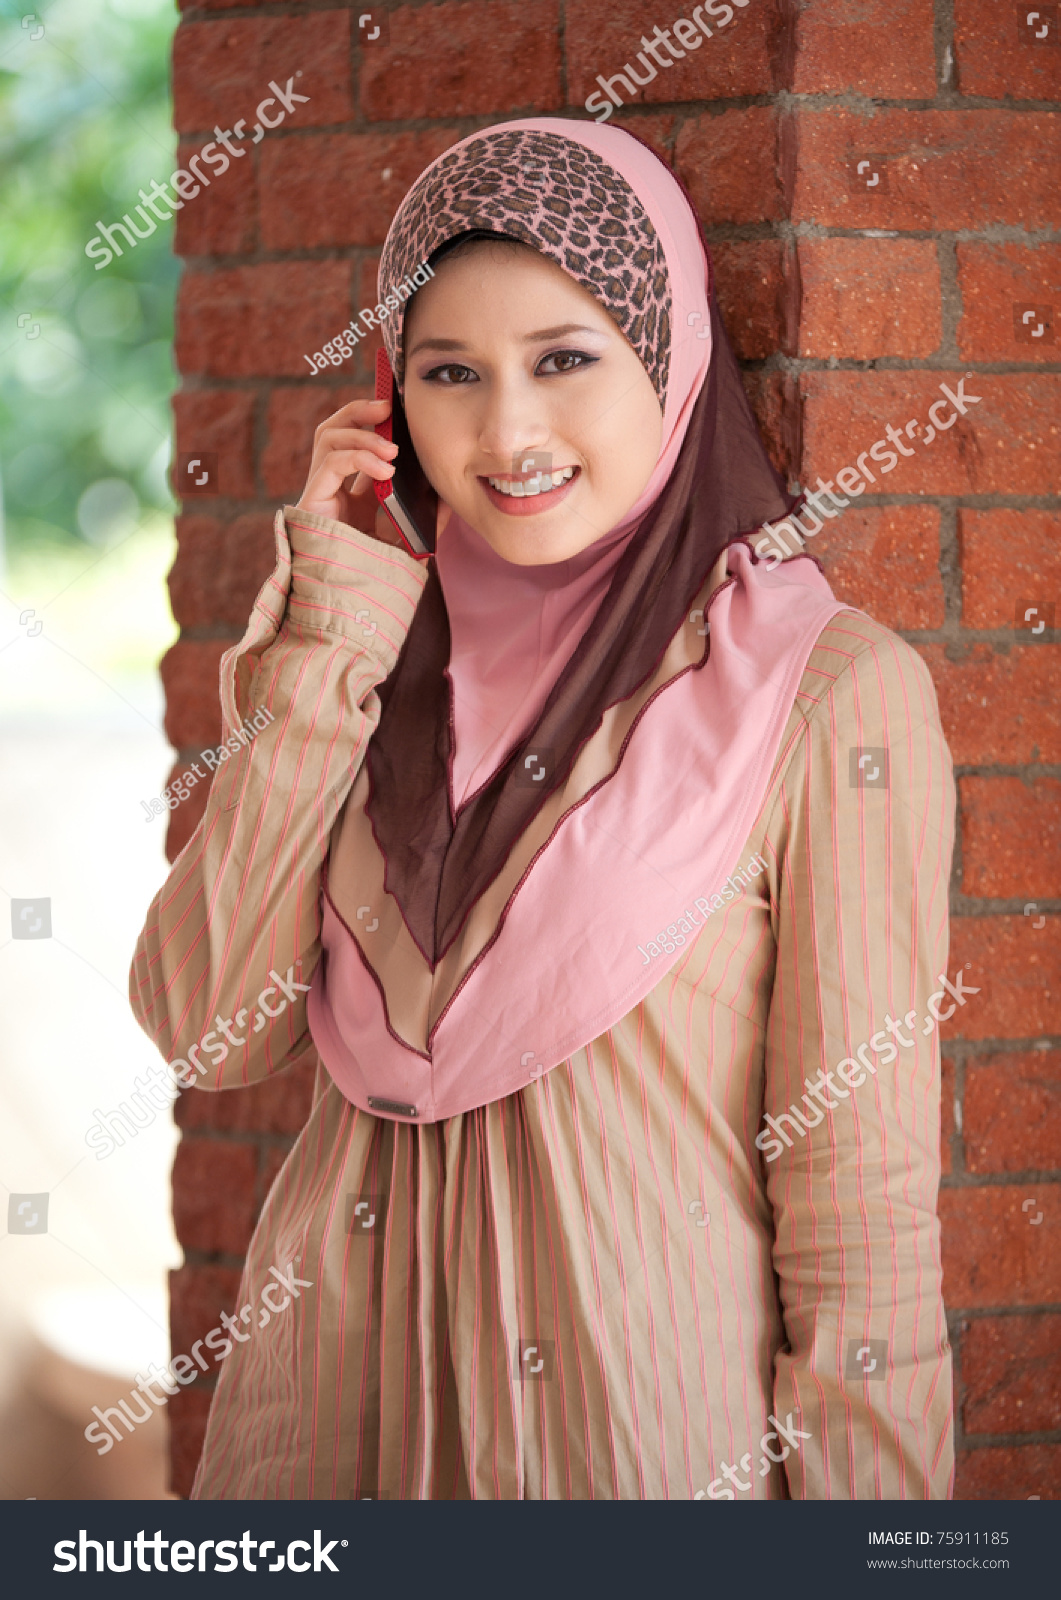 monett muslim Her ethnicity is indian american, and religious views are listed as muslim monette is now married she has a reported annual income of 90 - 99,999 and a current net worth value of $250,000 - $499,999.